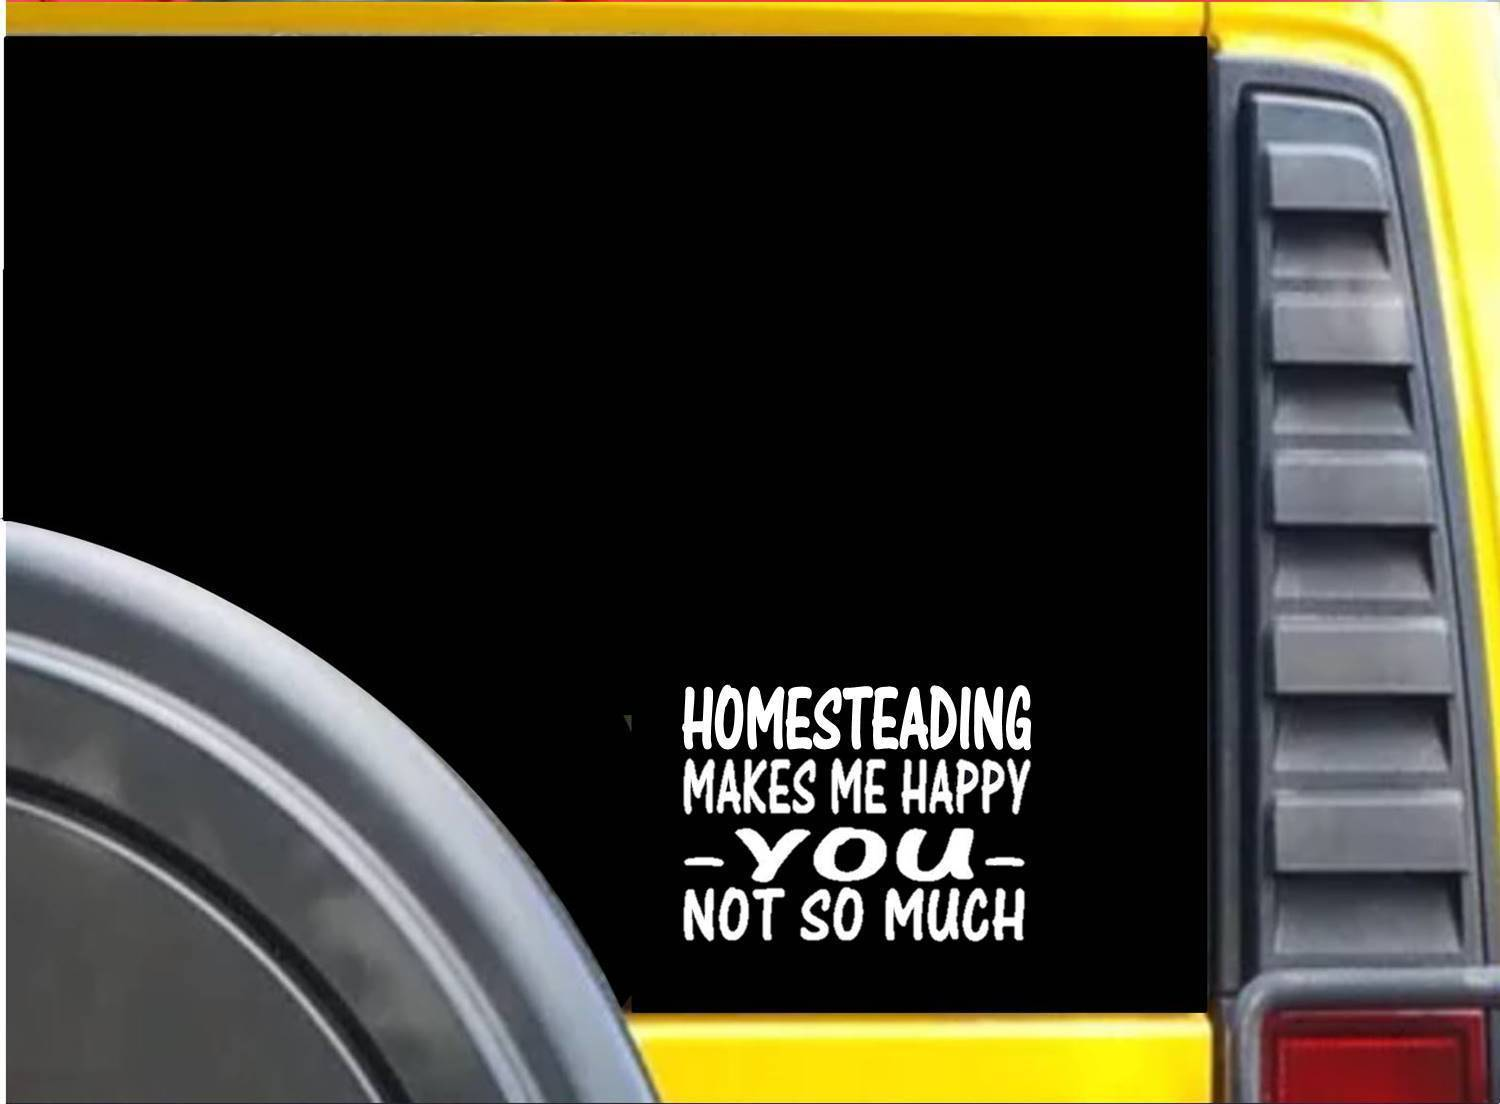 Homesteading Makes Me Happy K621 6 inch Sticker decal